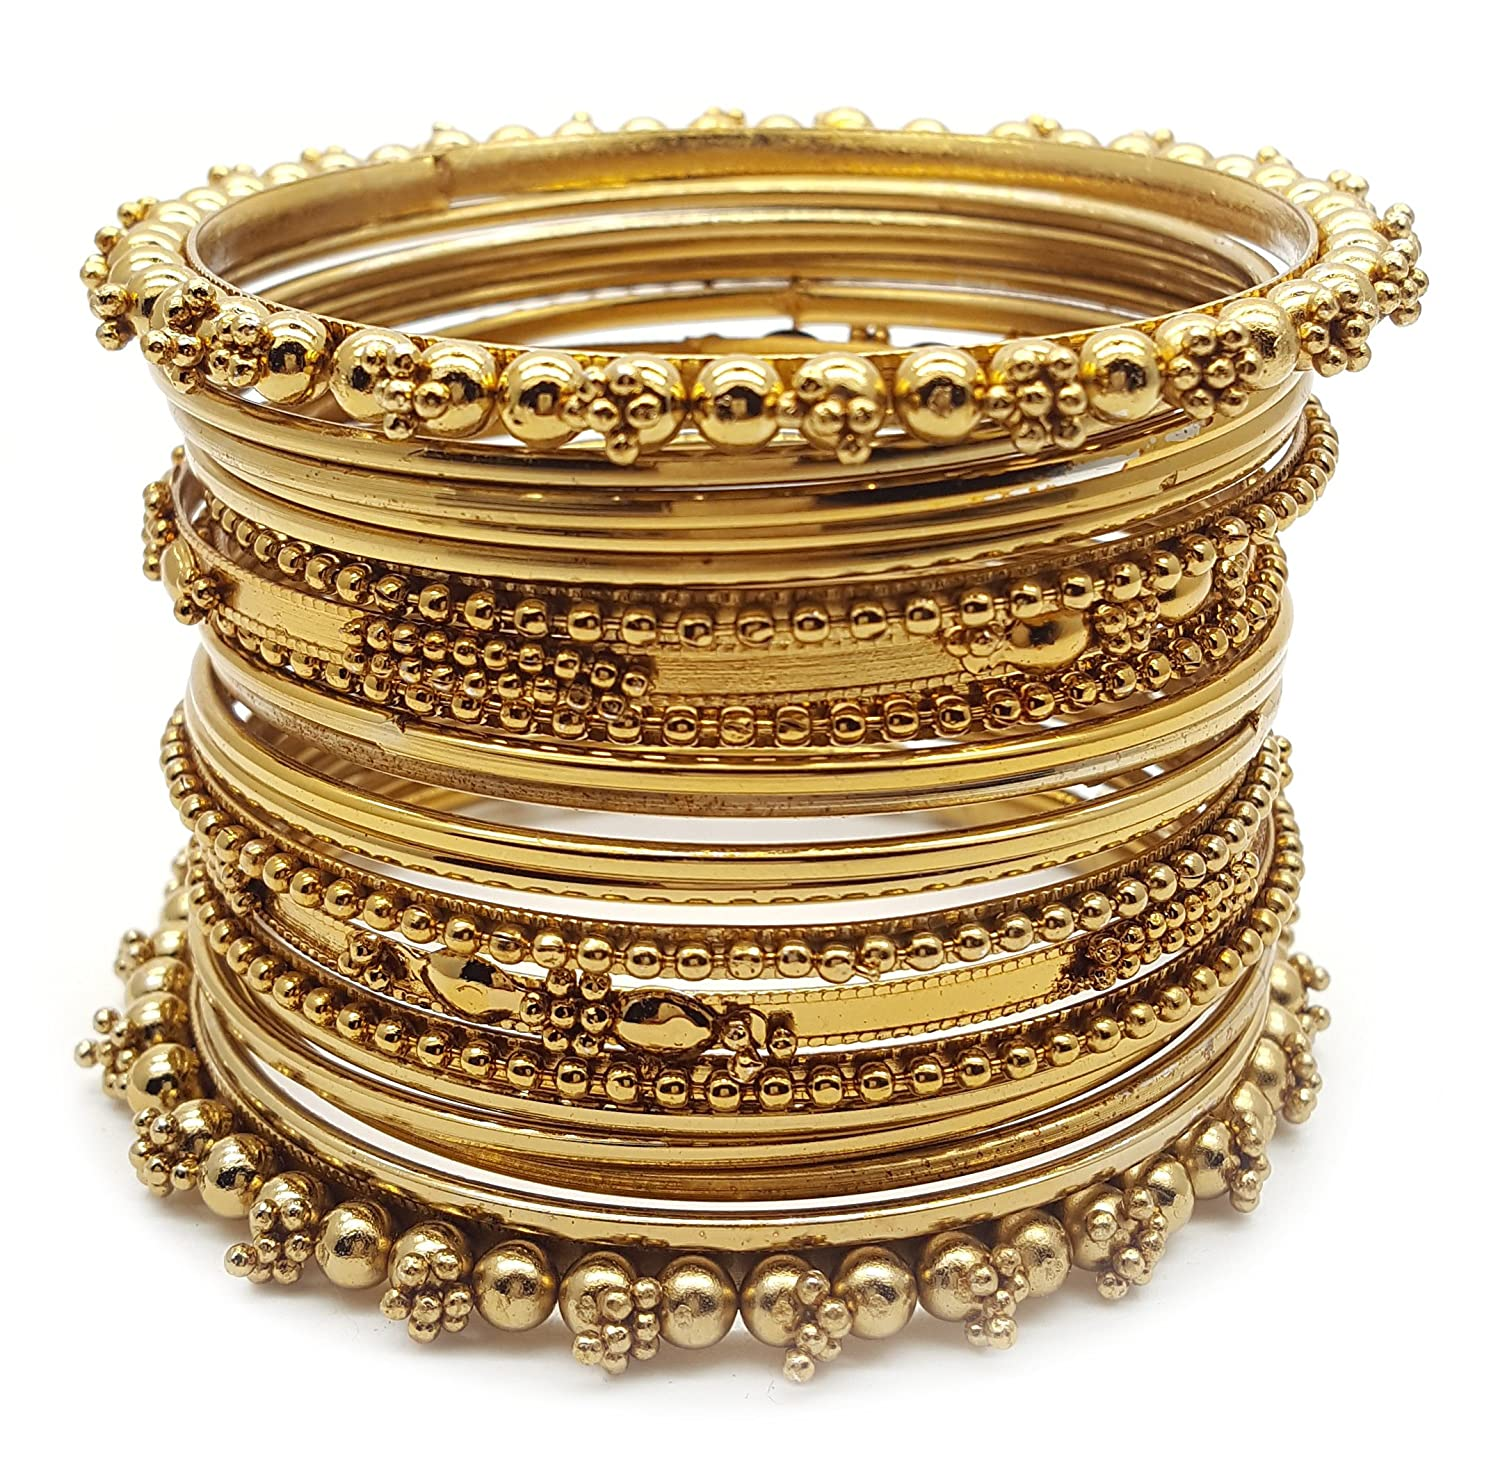 YouBella Antique Look Jewellery Gold Plated Traditional